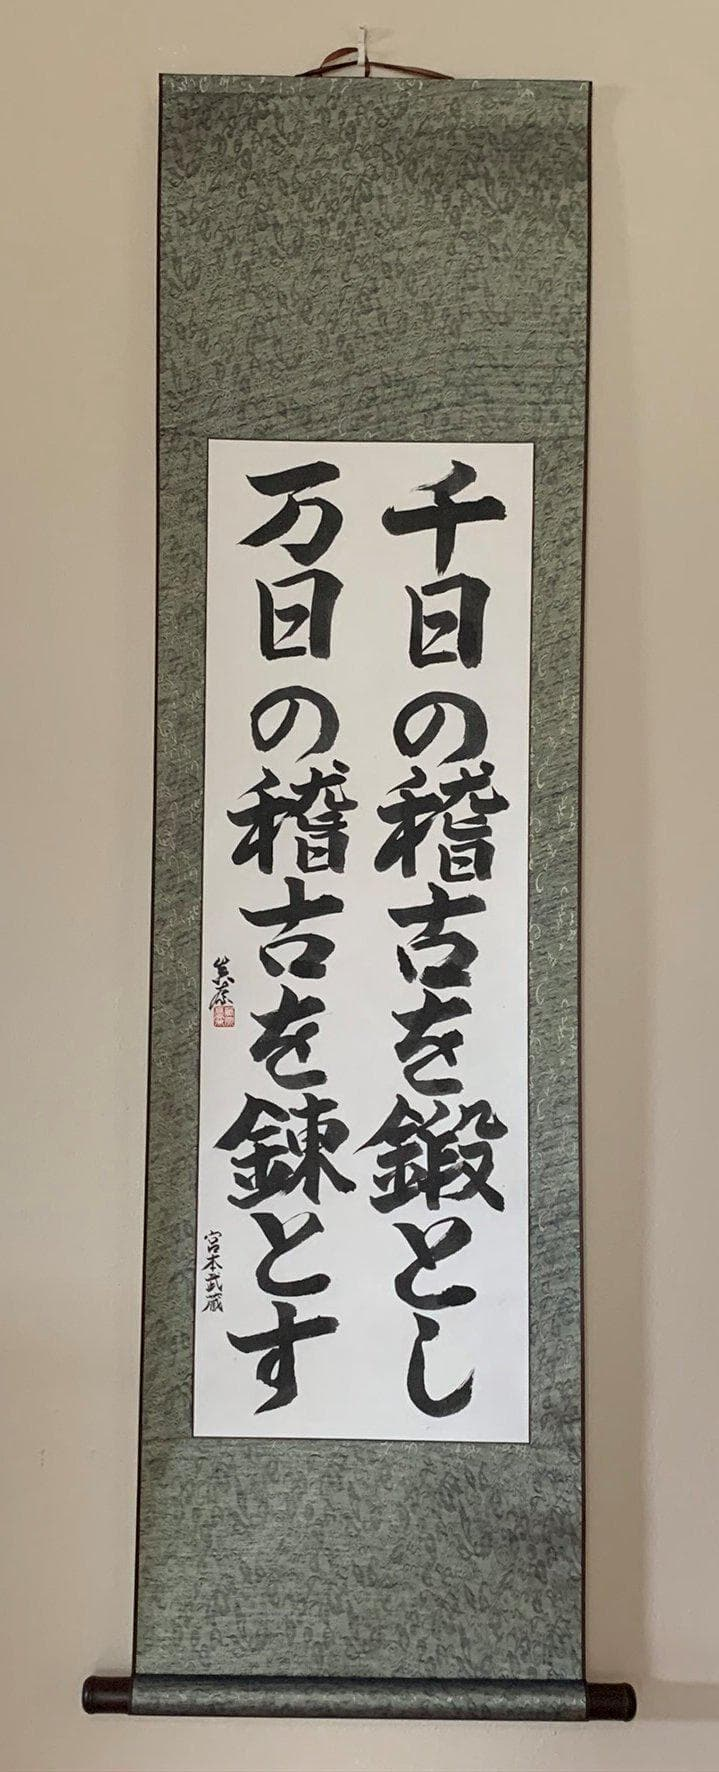 Feudal Japan Musashi Miyamoto Quote Wall Scroll Ancient Treasures Ancientreasures Viking Odin Thor Mjolnir Celtic Ancient Egypt Norse Norse Mythology